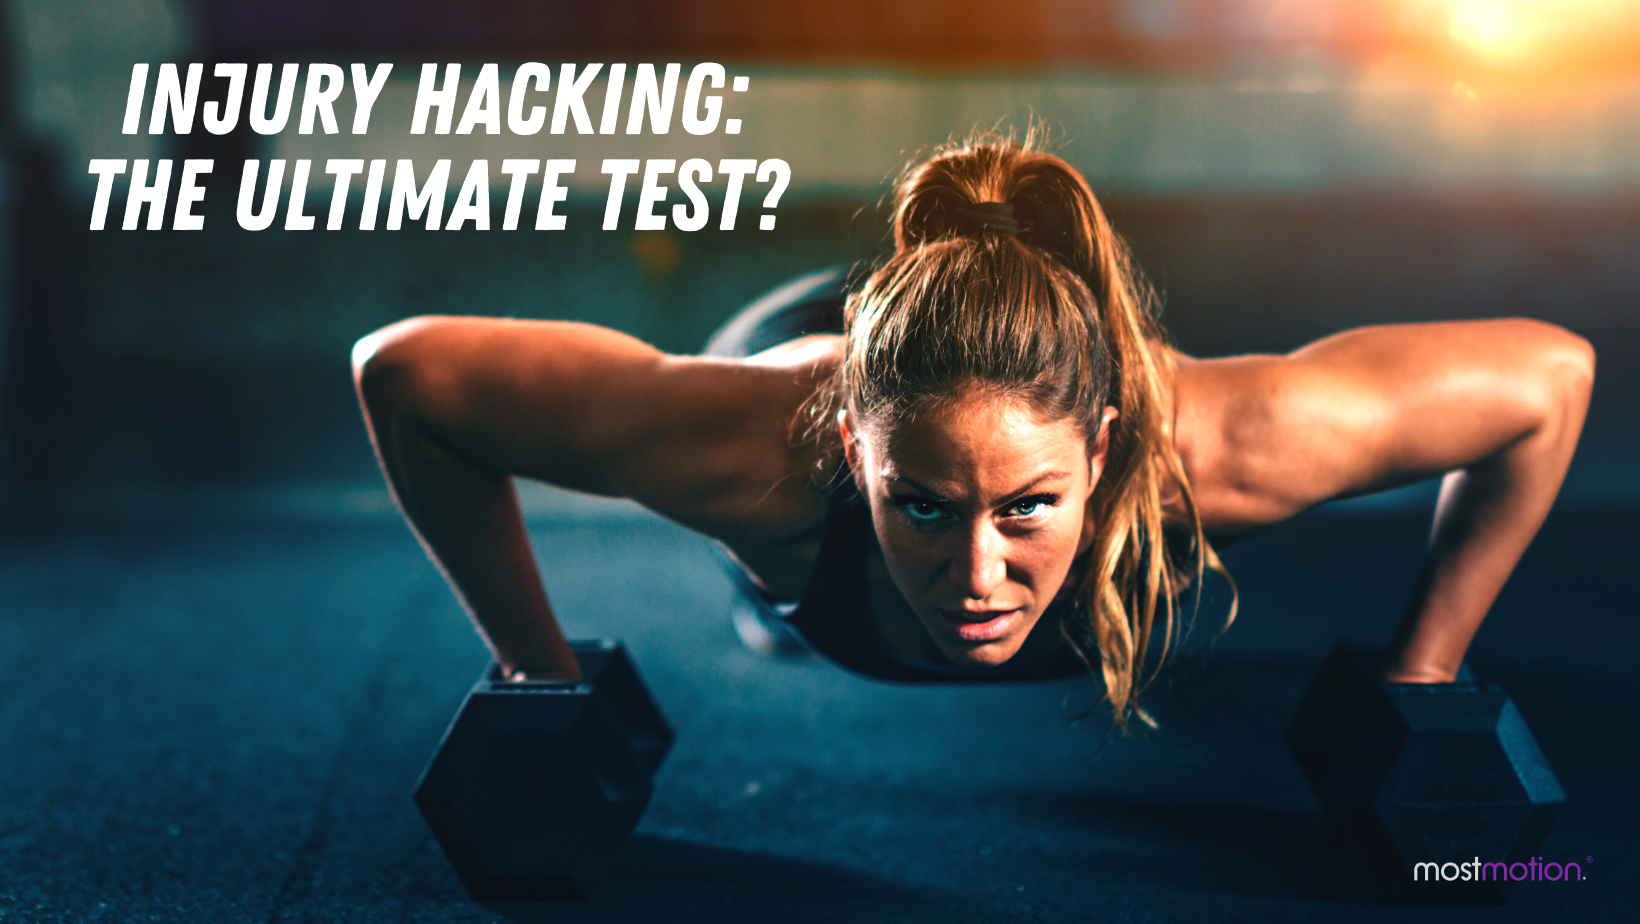 Injury Hacking: The Ultimate Test?